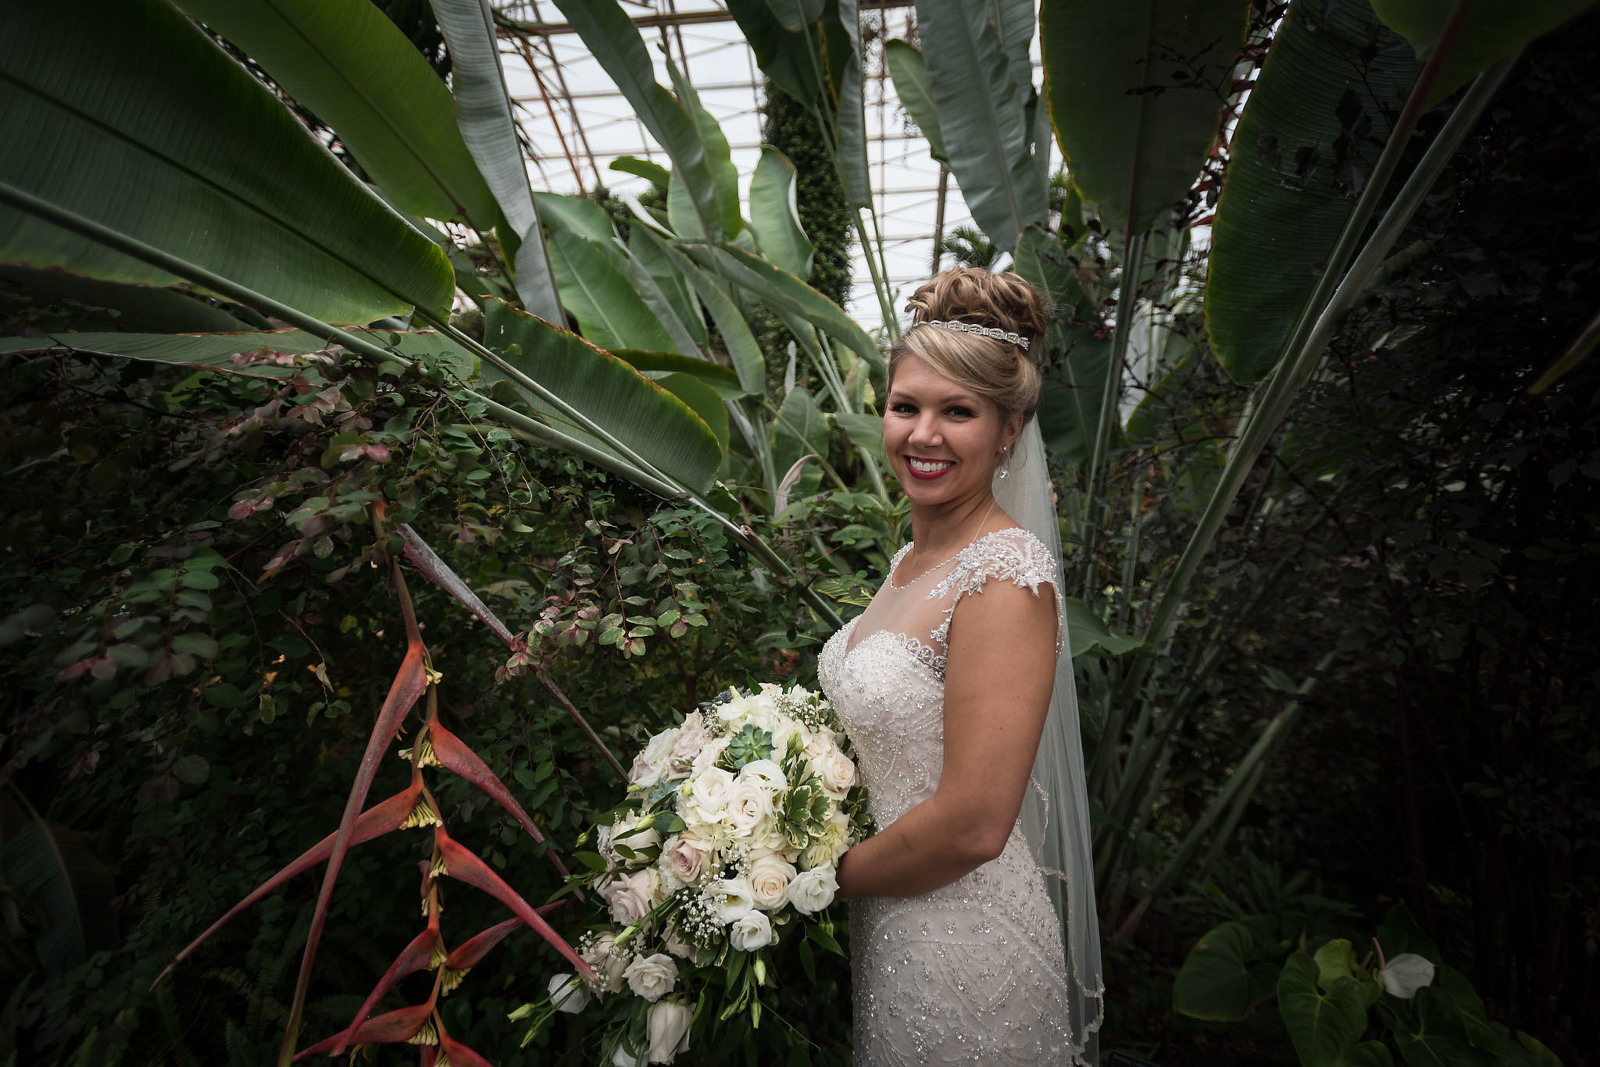 Bridal portraits, Fort Wayne Bride, Foellinger-Freimann Botanical Conservatory wedding, downtown Fort Wayne, Fort Wayne, Indiana wedding photography by Kasey Wallace Photography